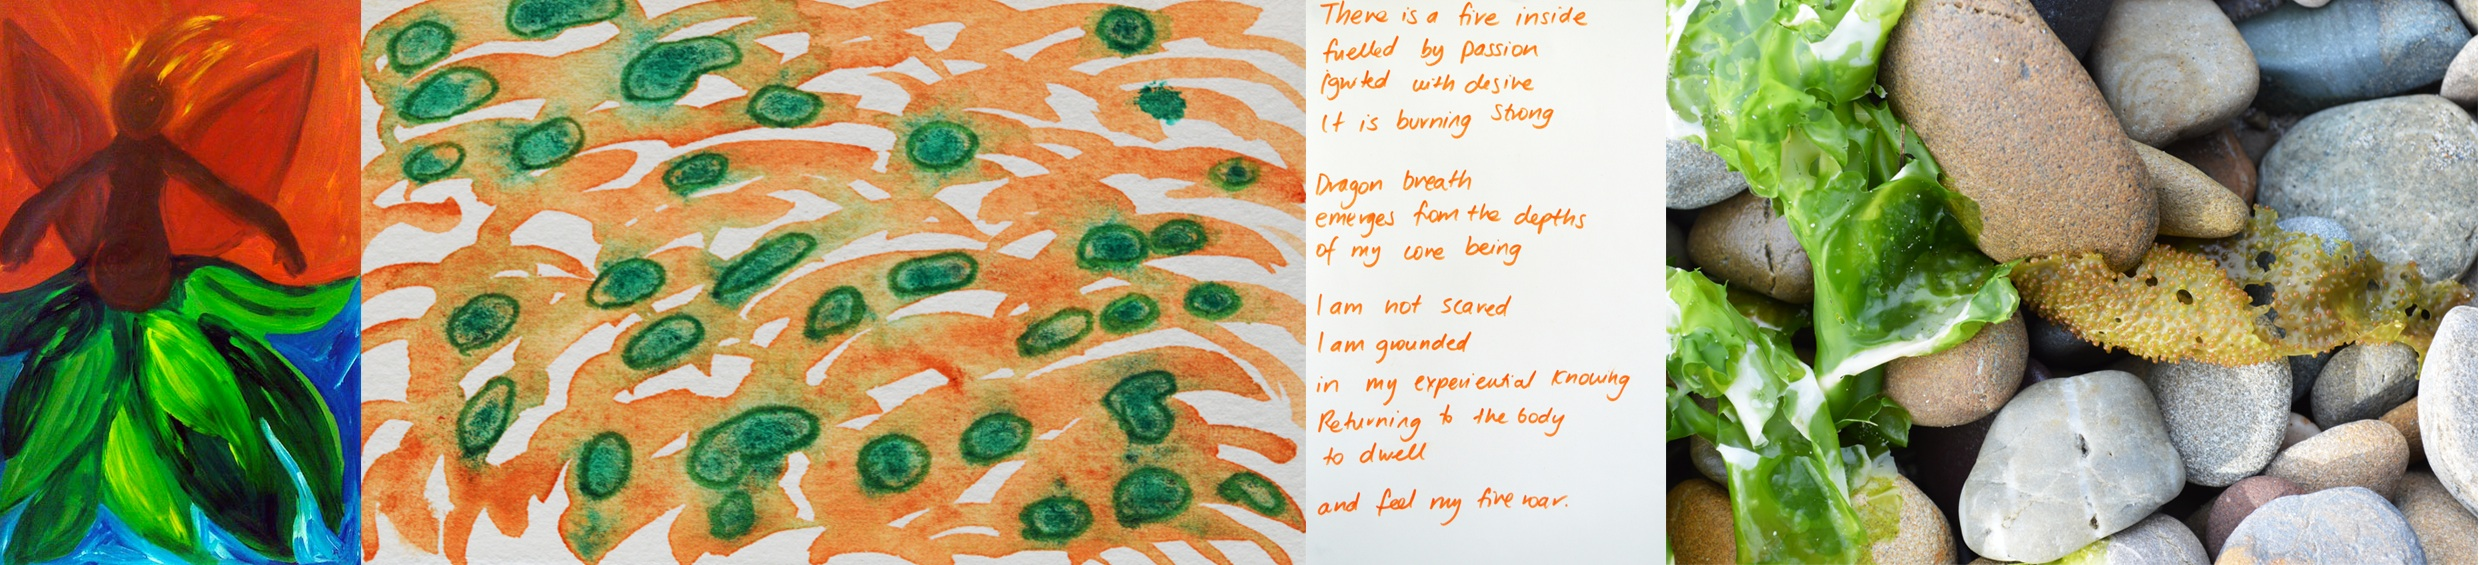 """A strip of different artistic images including: 1. Painting of a red and orange faceless figure with arms stretched out and big wings, a green leaf like skirt on a blue and orange background 2. Abstract watercolour painting with green circular forms on orange circular lines overlapping each other.  3. Hand-written text """" There is a fire inside, fuelled by passion, ignited with desire, it is burning strong. Dragon breathe emerges from the depths of my core being. I am not scared, I am grounded in my experiential knowing. Returning to the body to dwell and feel my fire roar"""".  4. Photograph of rocks and green seaweed on the beach.  © all images by   Natalya Garden-Thompson, 2016"""